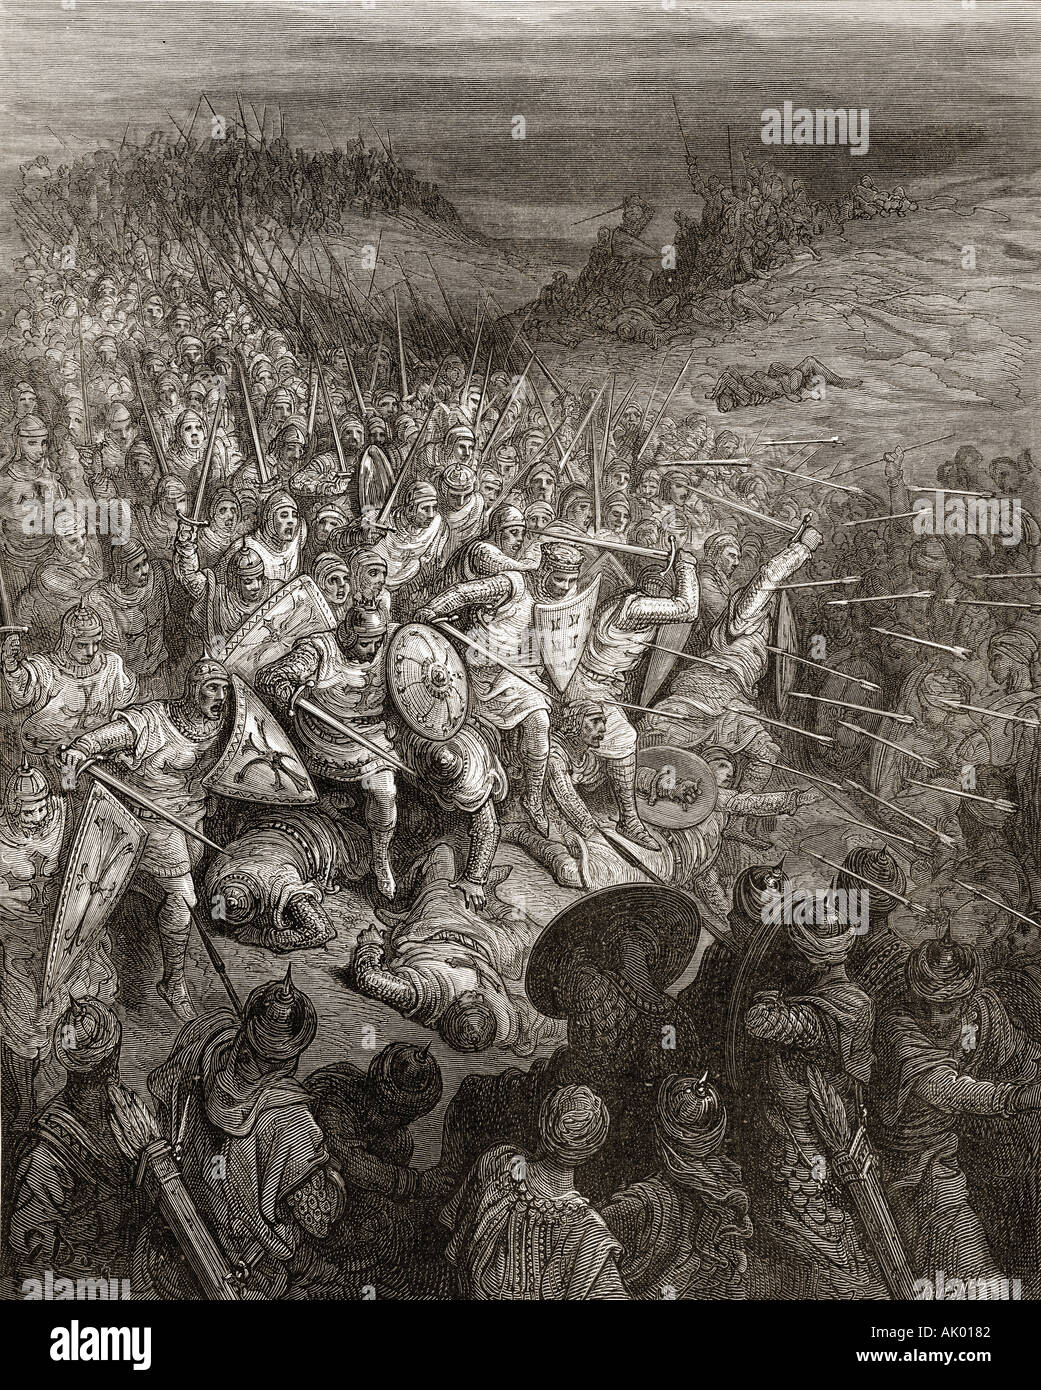 Godfrey's soldiers drive through the Muslim army during the first crusade 1096 - Stock Image